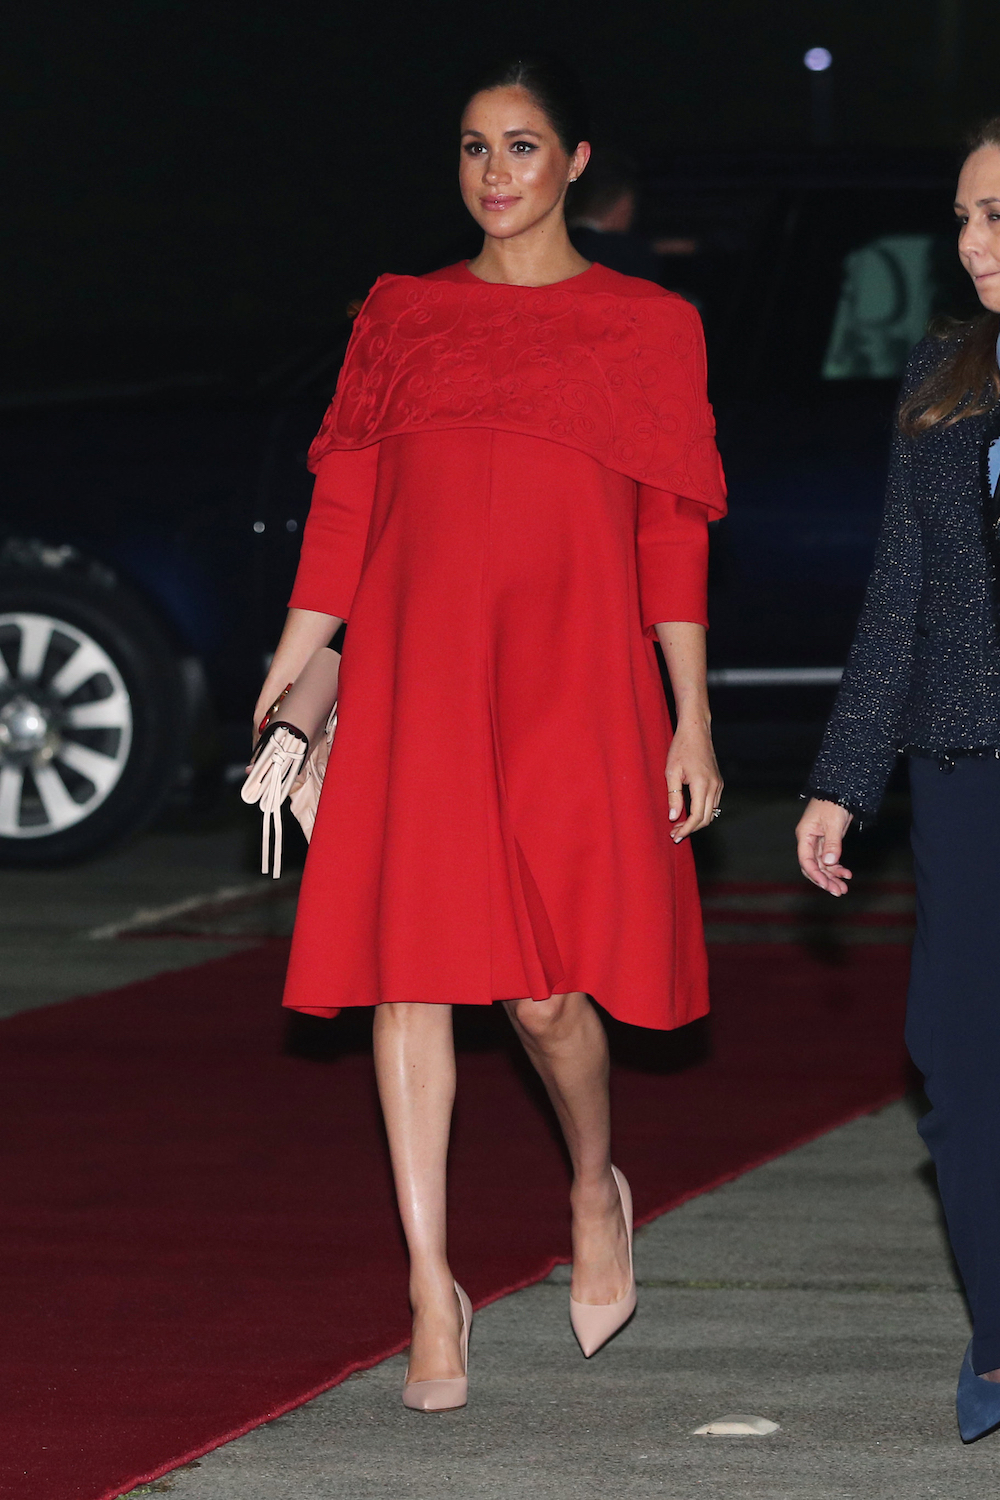 The Duchess of Sussex on her arrival at Casablanca airport, for her tour of Morocco